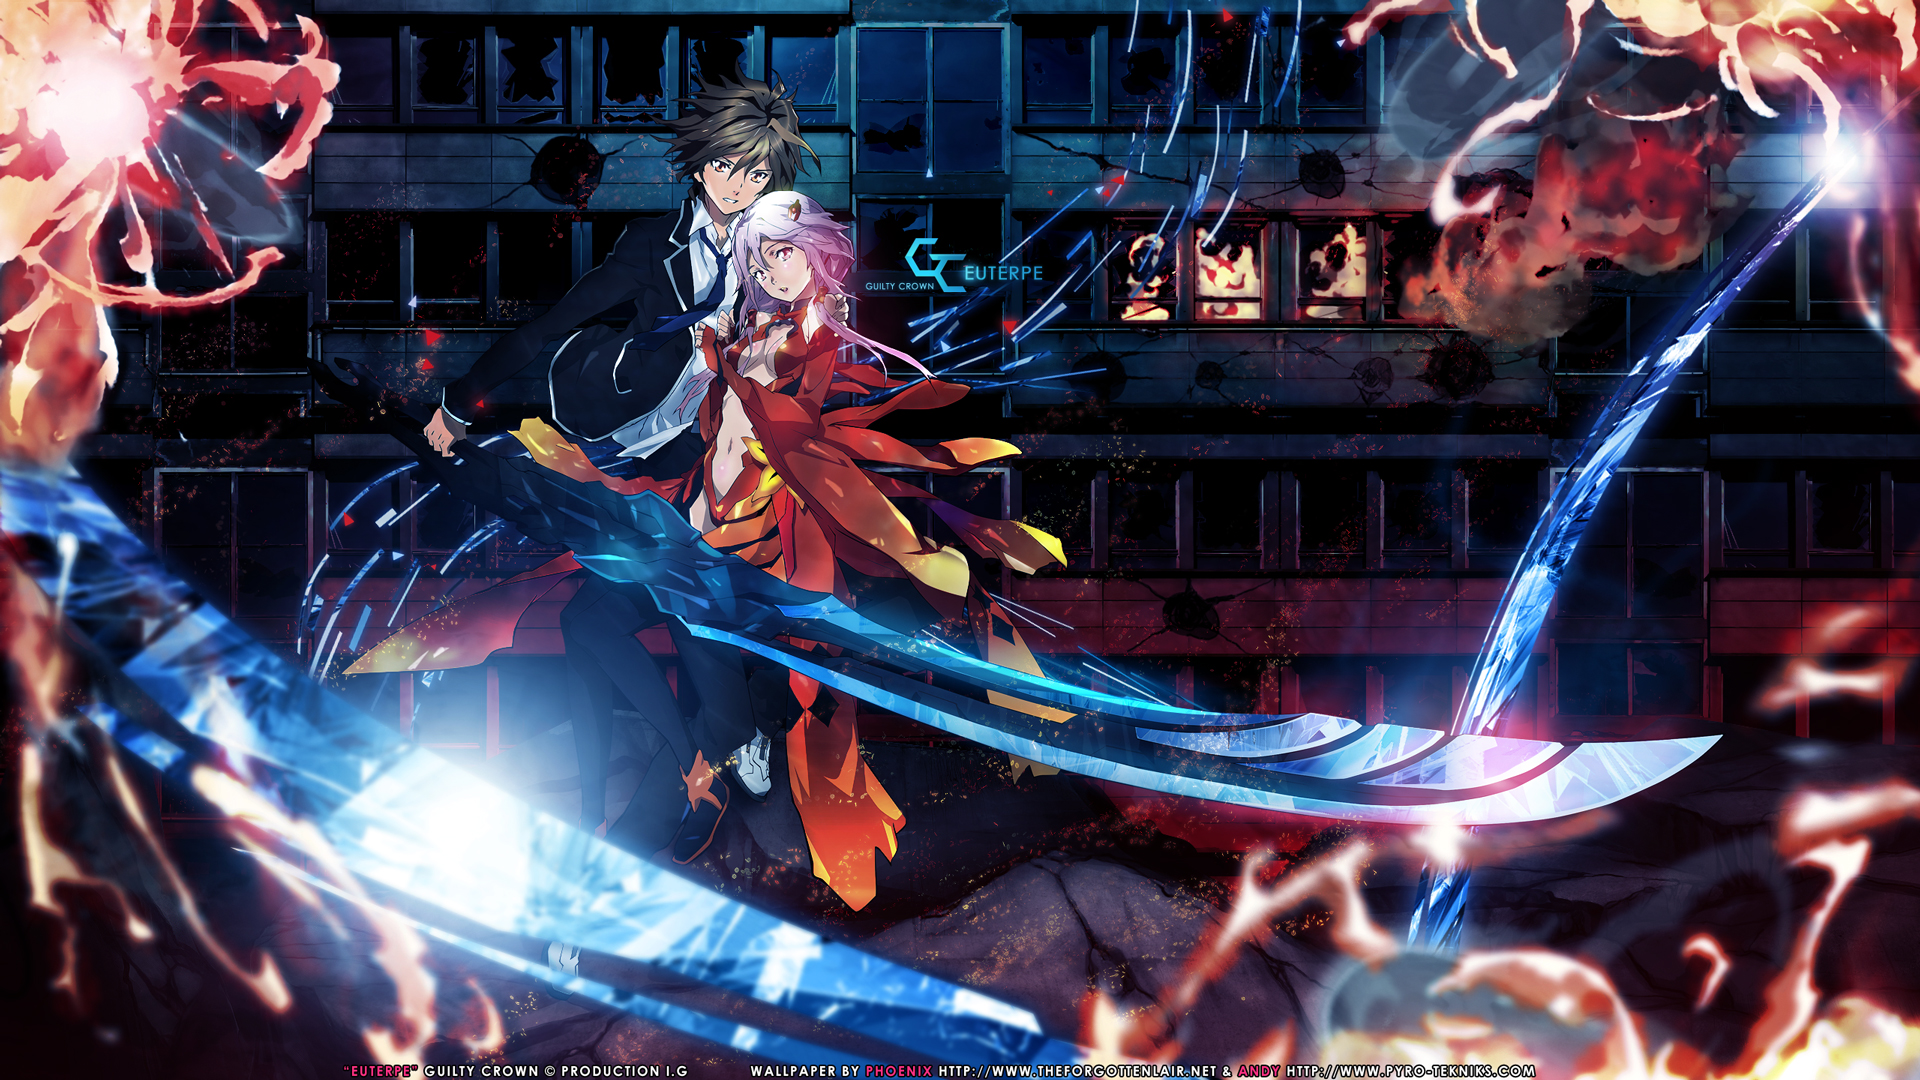 Guilty Crown Wallpaper Inori: 265 Guilty Crown HD Wallpapers